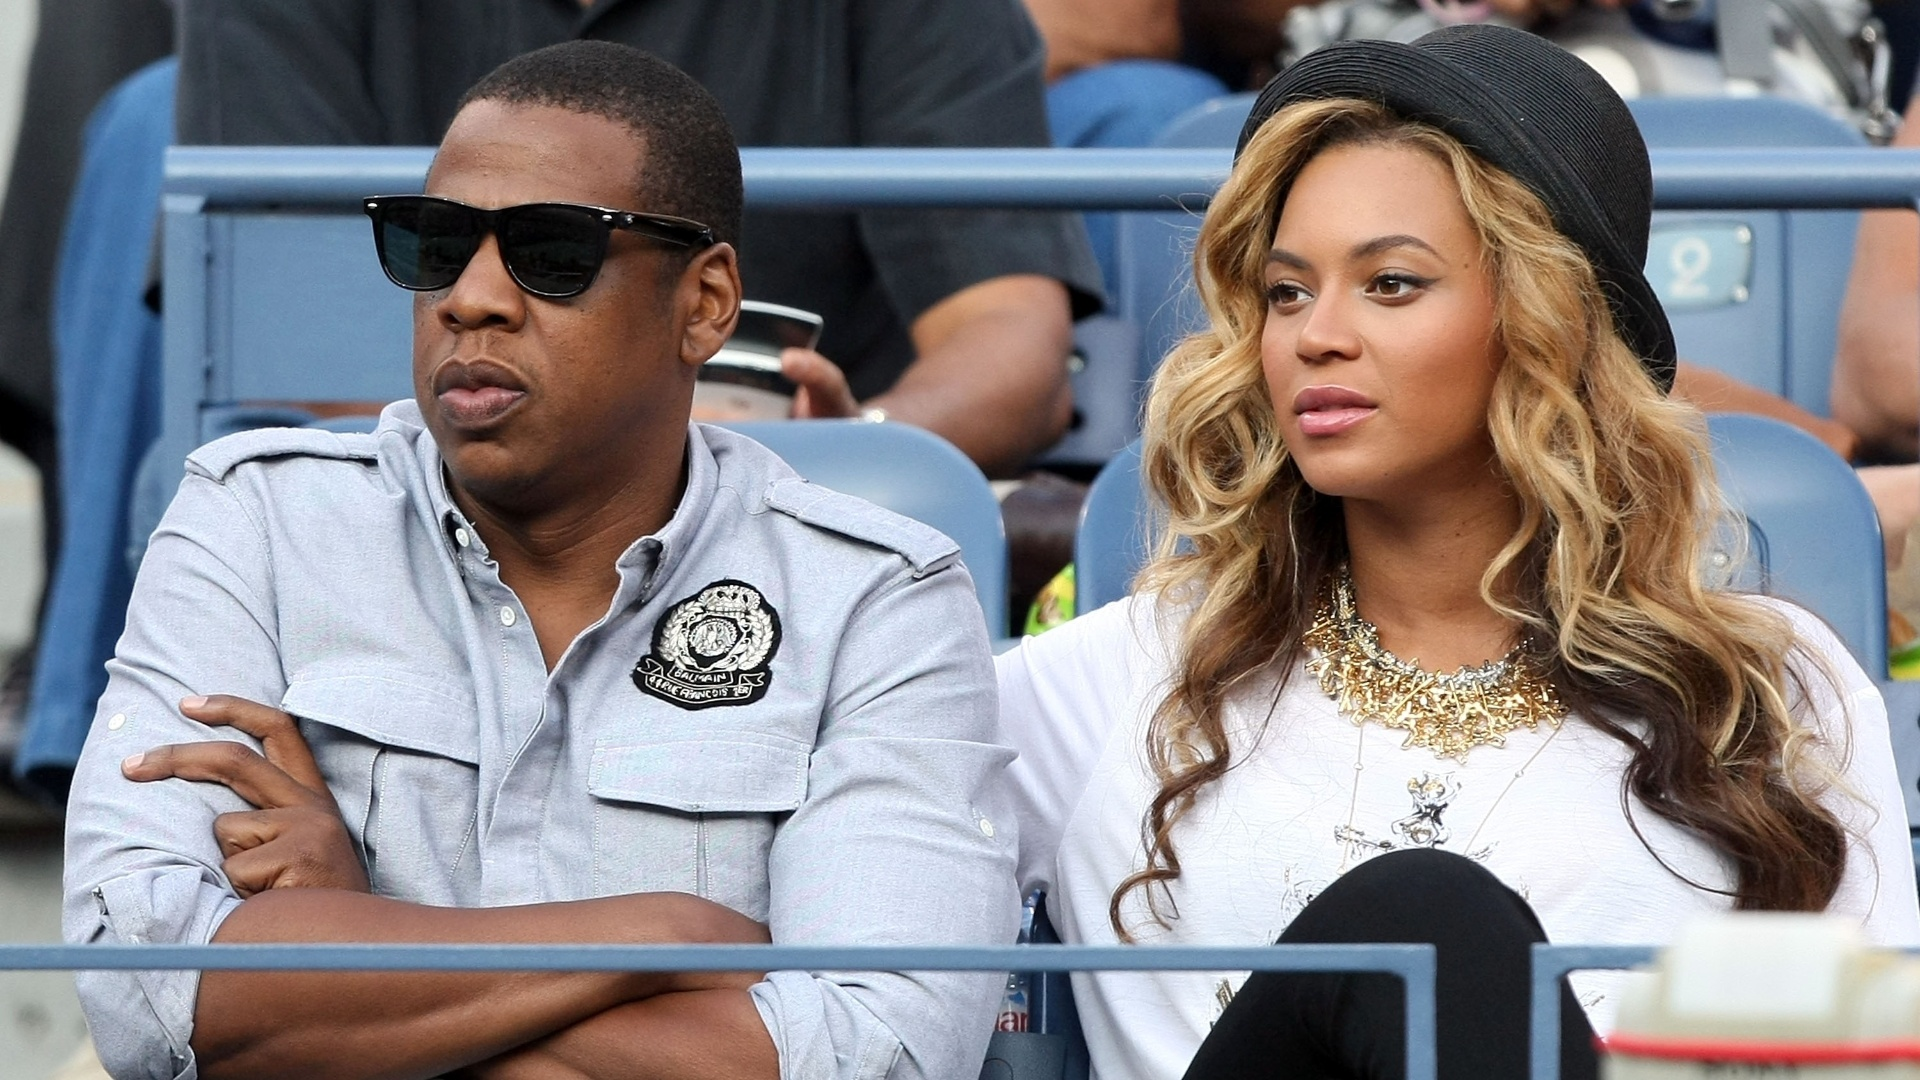 Casal de cantores Jay-Z (e) e Beyonc acompanha a final do Aberto dos EUA entre Rafael Nadal e Novak Djokovic (12/09/2011)